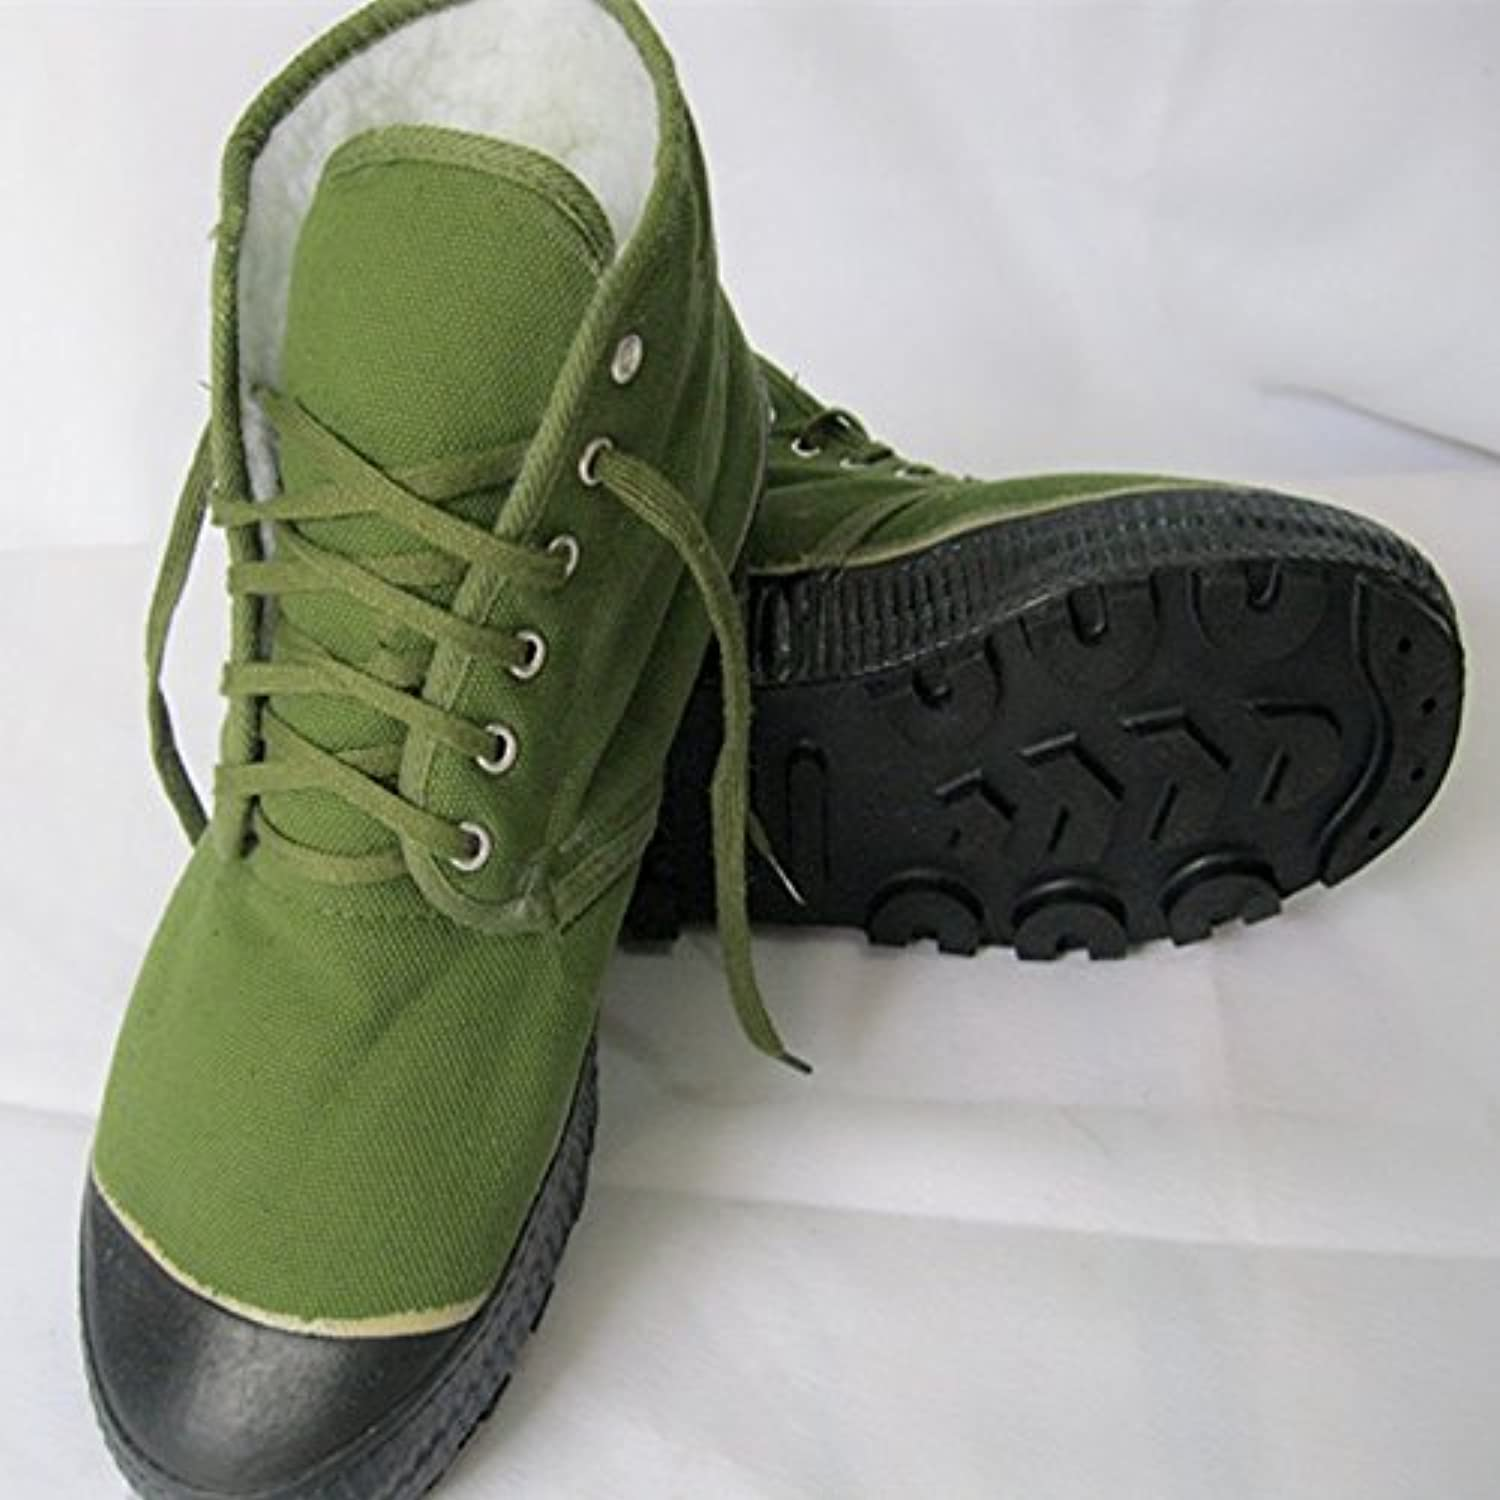 Men's outdoor shoes warm in winter and cold snow